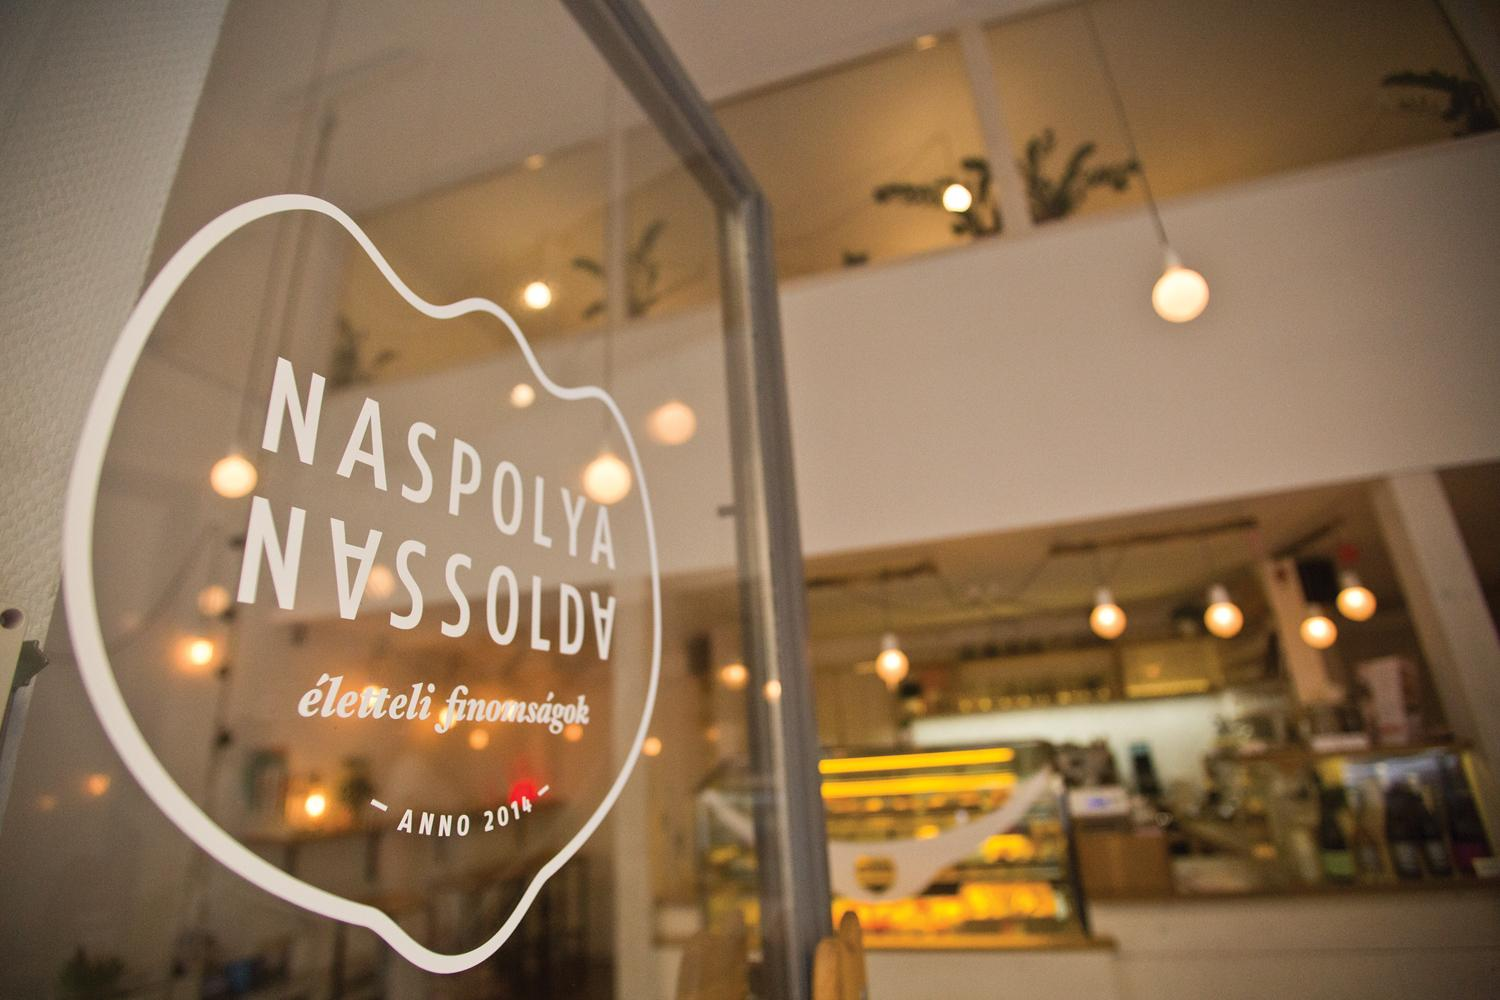 Restaurant Review: Café & Pastry Shop Naspolya Nassolda